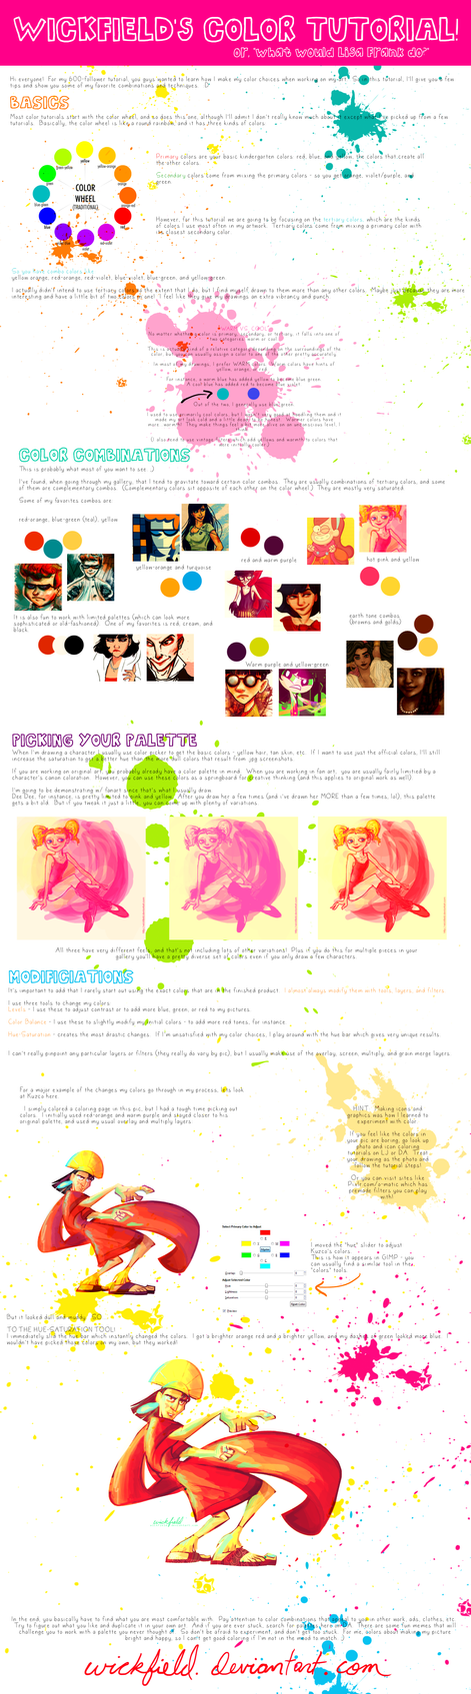 Color Tutorial by Wickfield